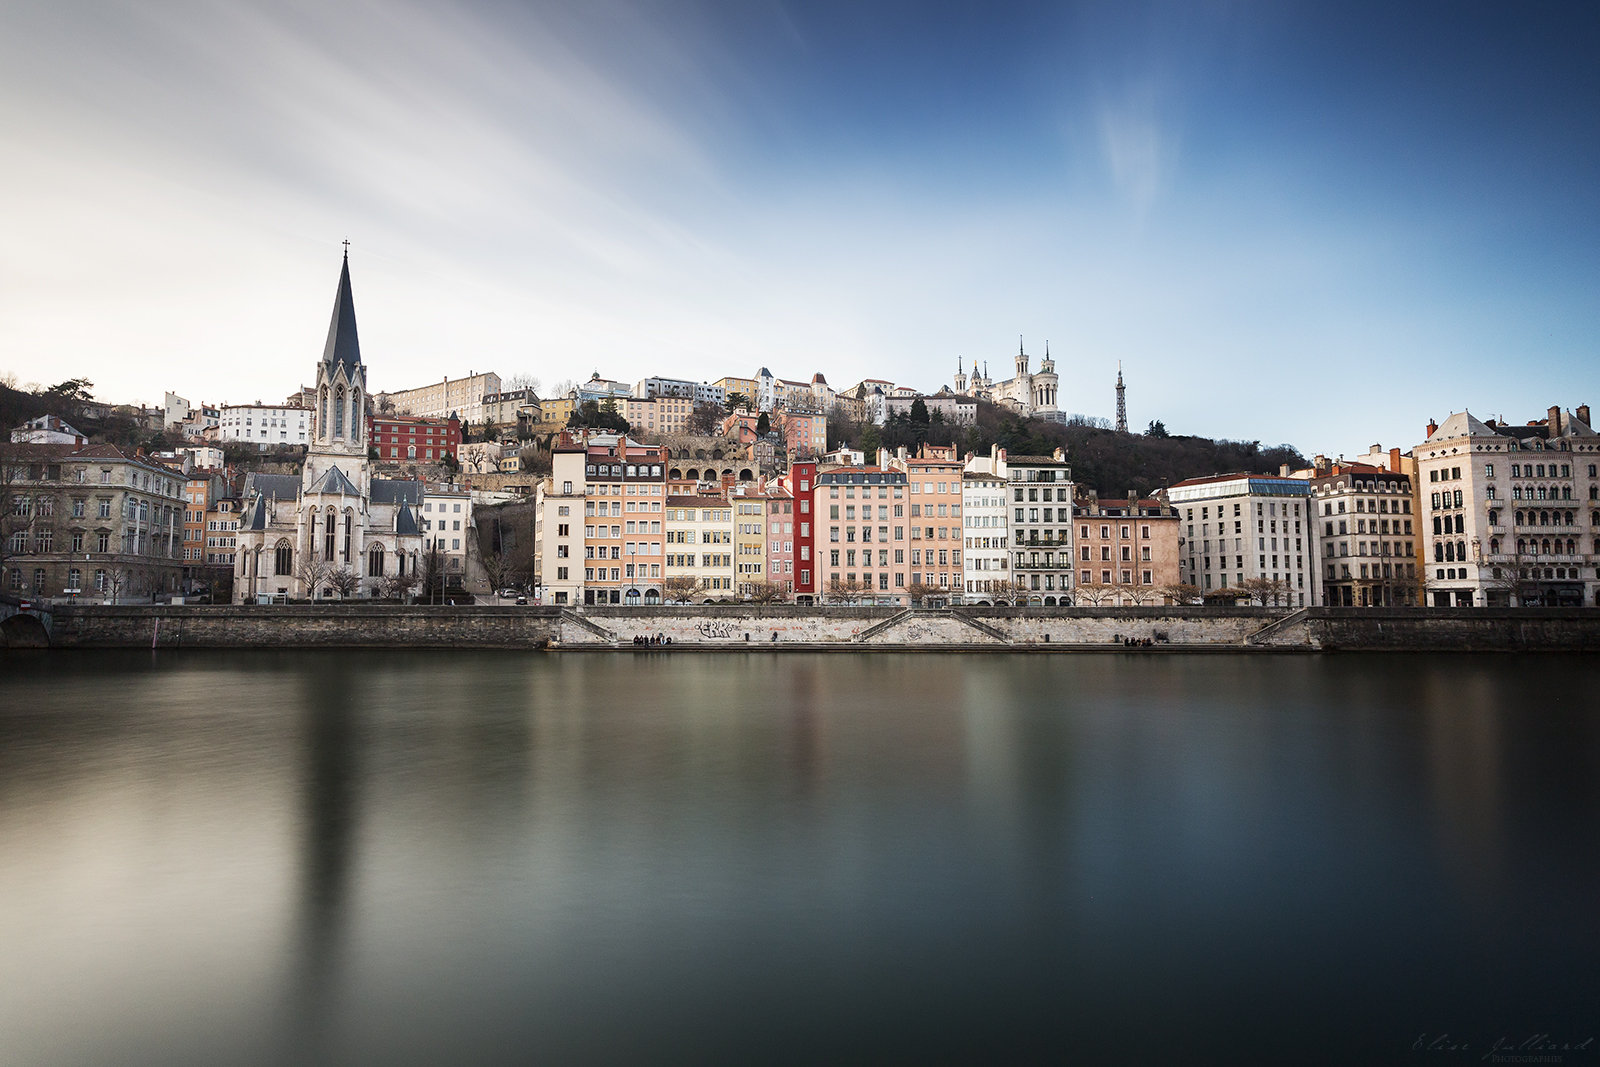 elise-julliard-photographe-lyon-rhone-alpes-photo-ville-de-lyon-onlylyon-quais-de-saone-fourviere-saint-georges-eglise-basilique-pose-longue